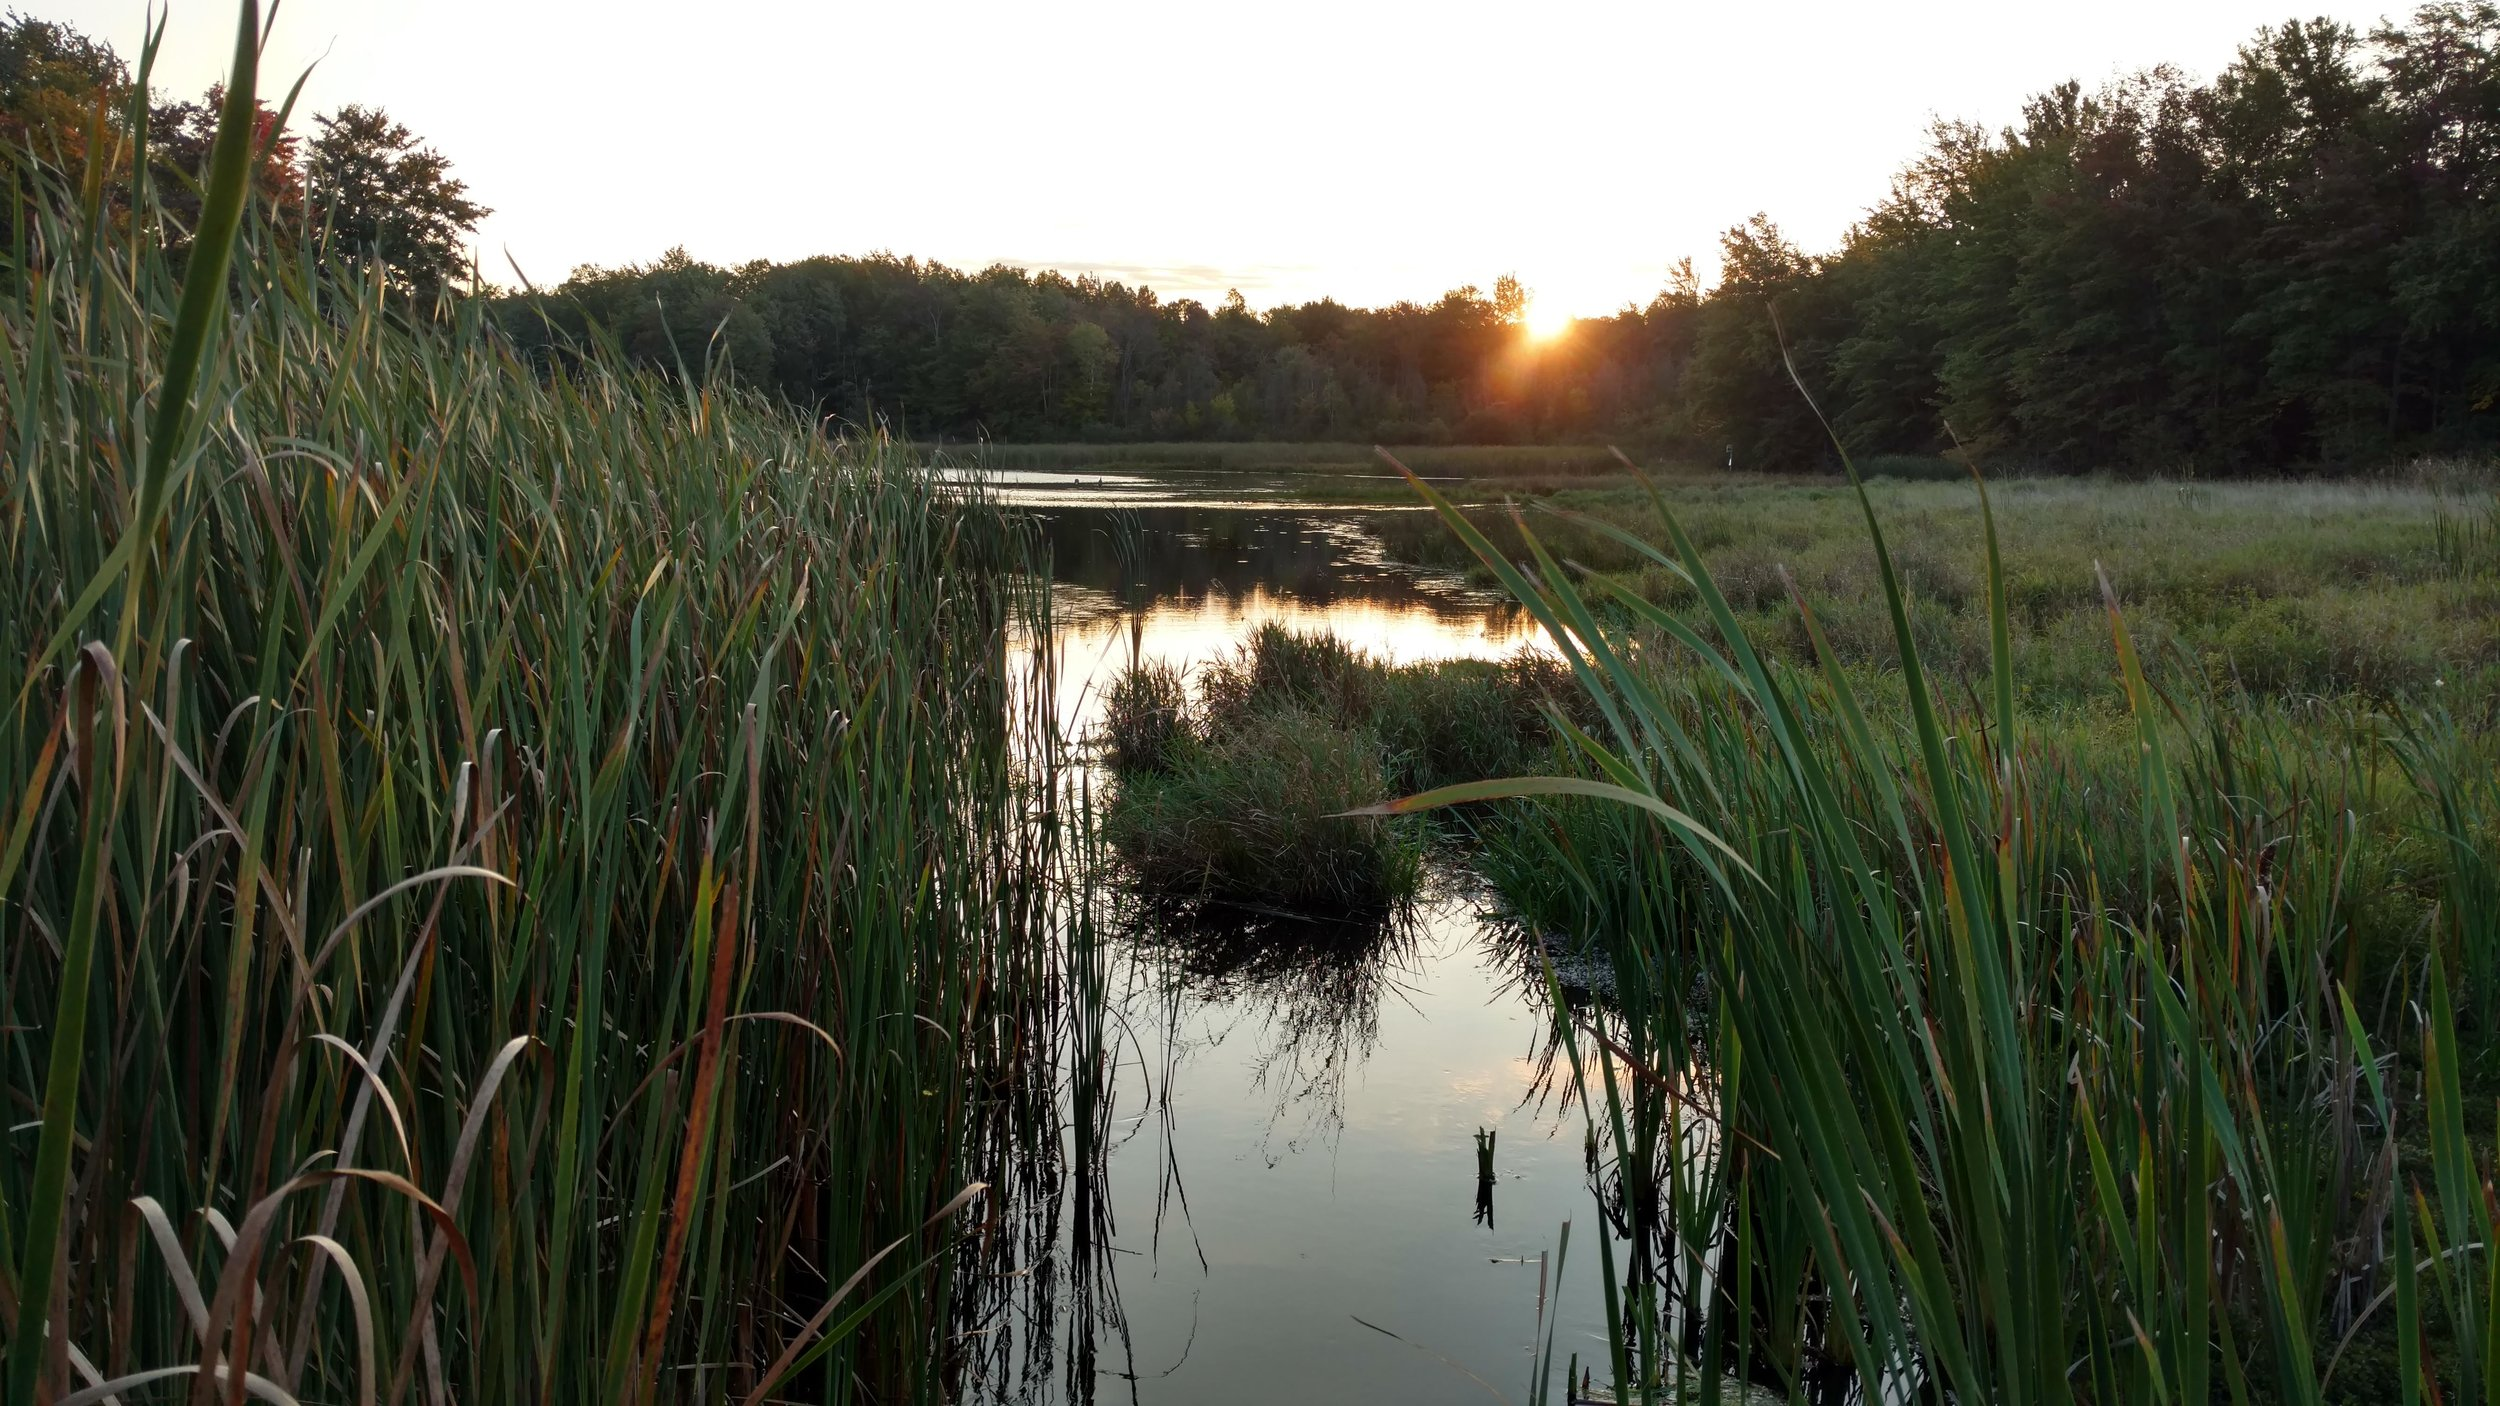 September at Gales Pond